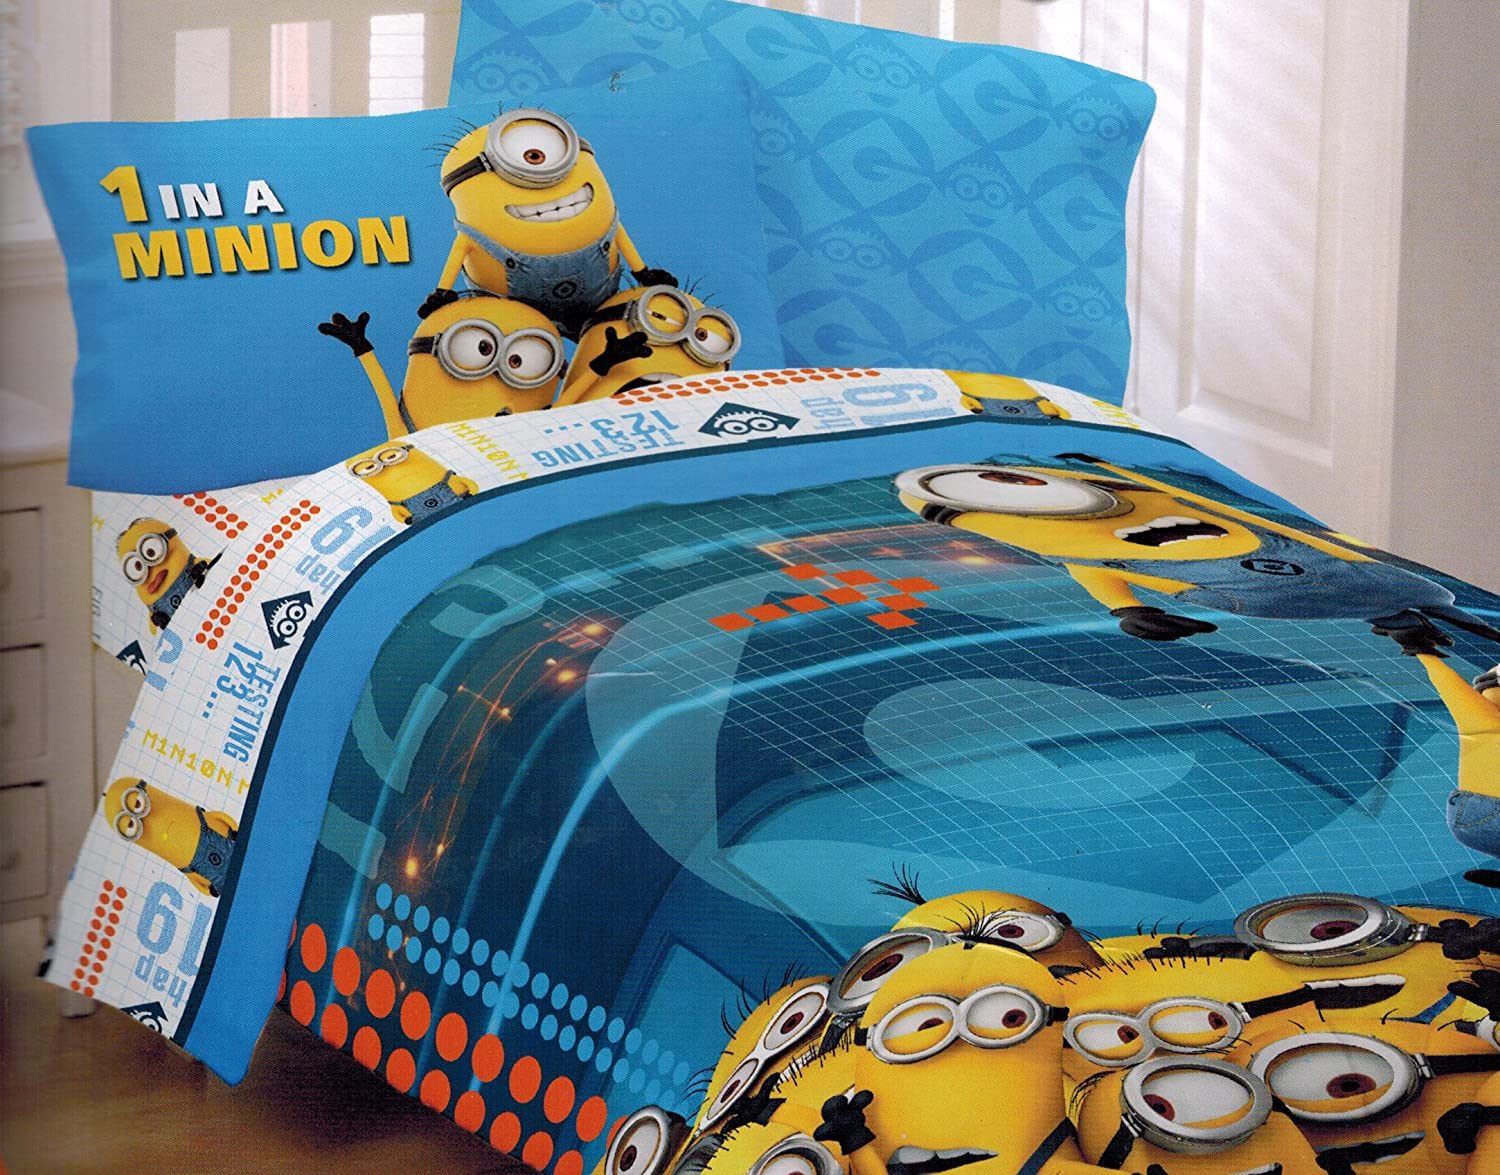 Minion Bedroom Kids Cute Minion Bedroom Decor From Despicable Me Movie